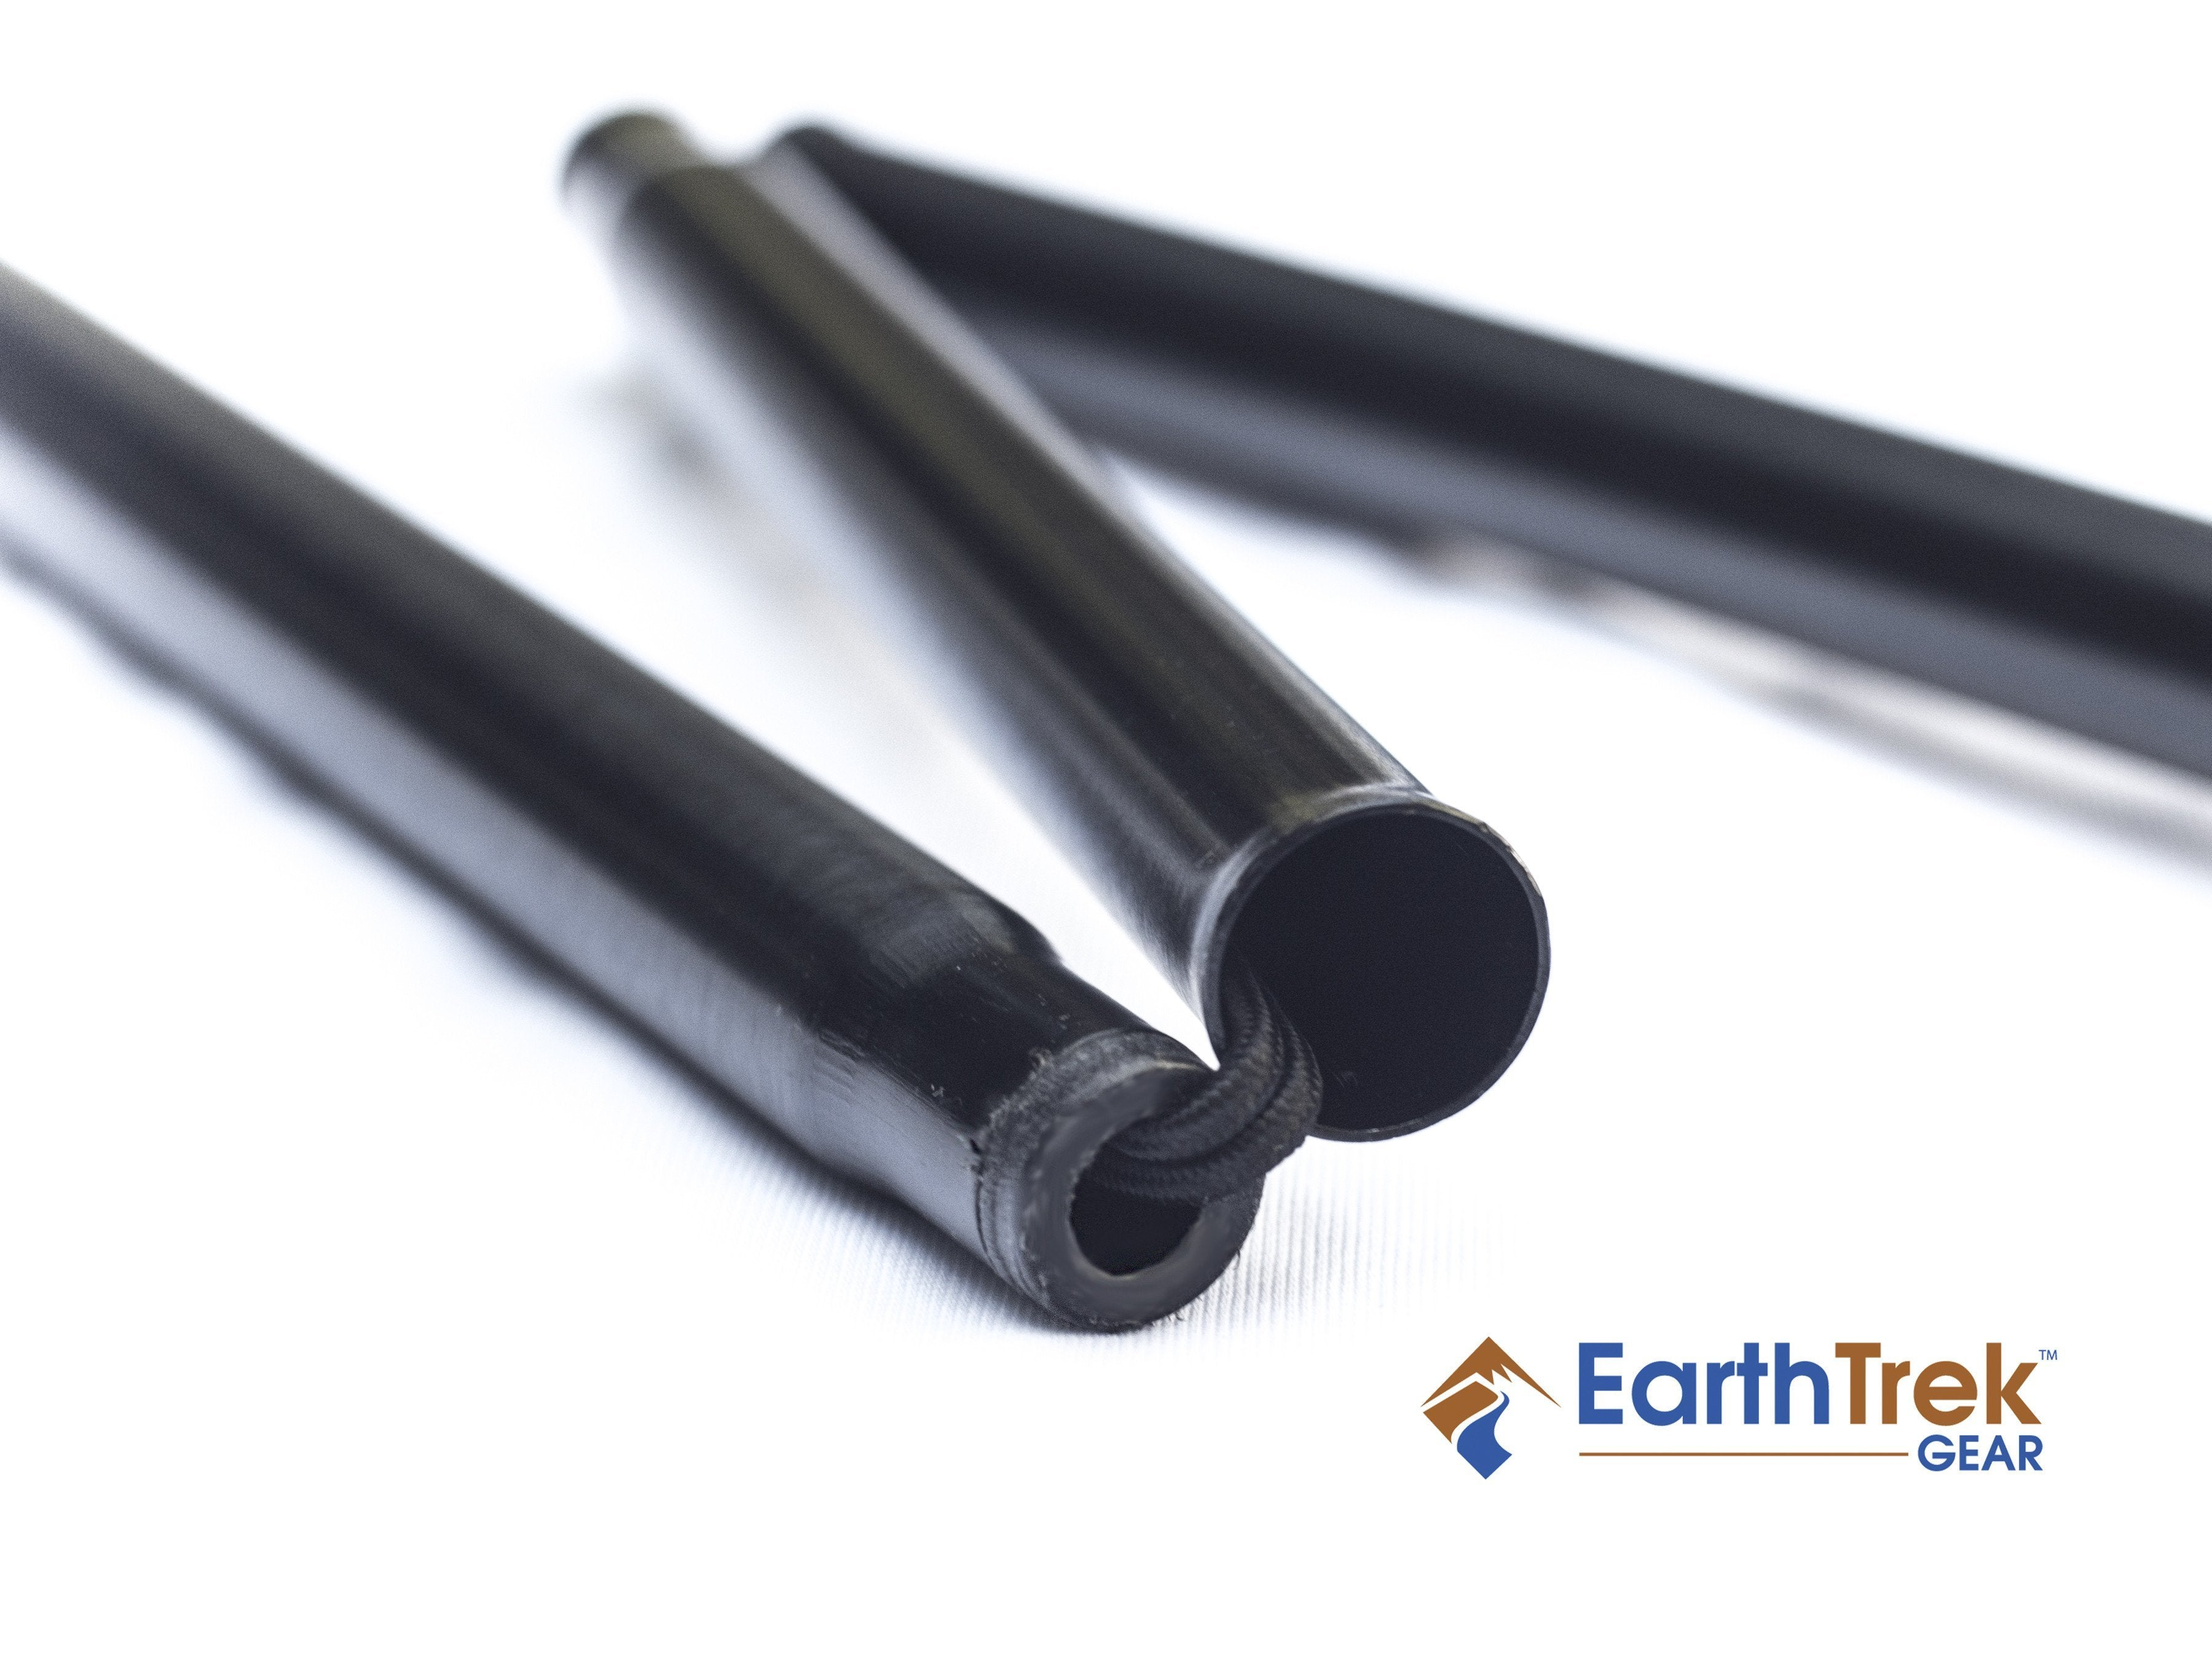 EarthTrek Pole 2-Pole Set - Trekking Hiking Walking,  - Collapsible Folding Pole,Earth Trek Gear - EarthTrek Gear